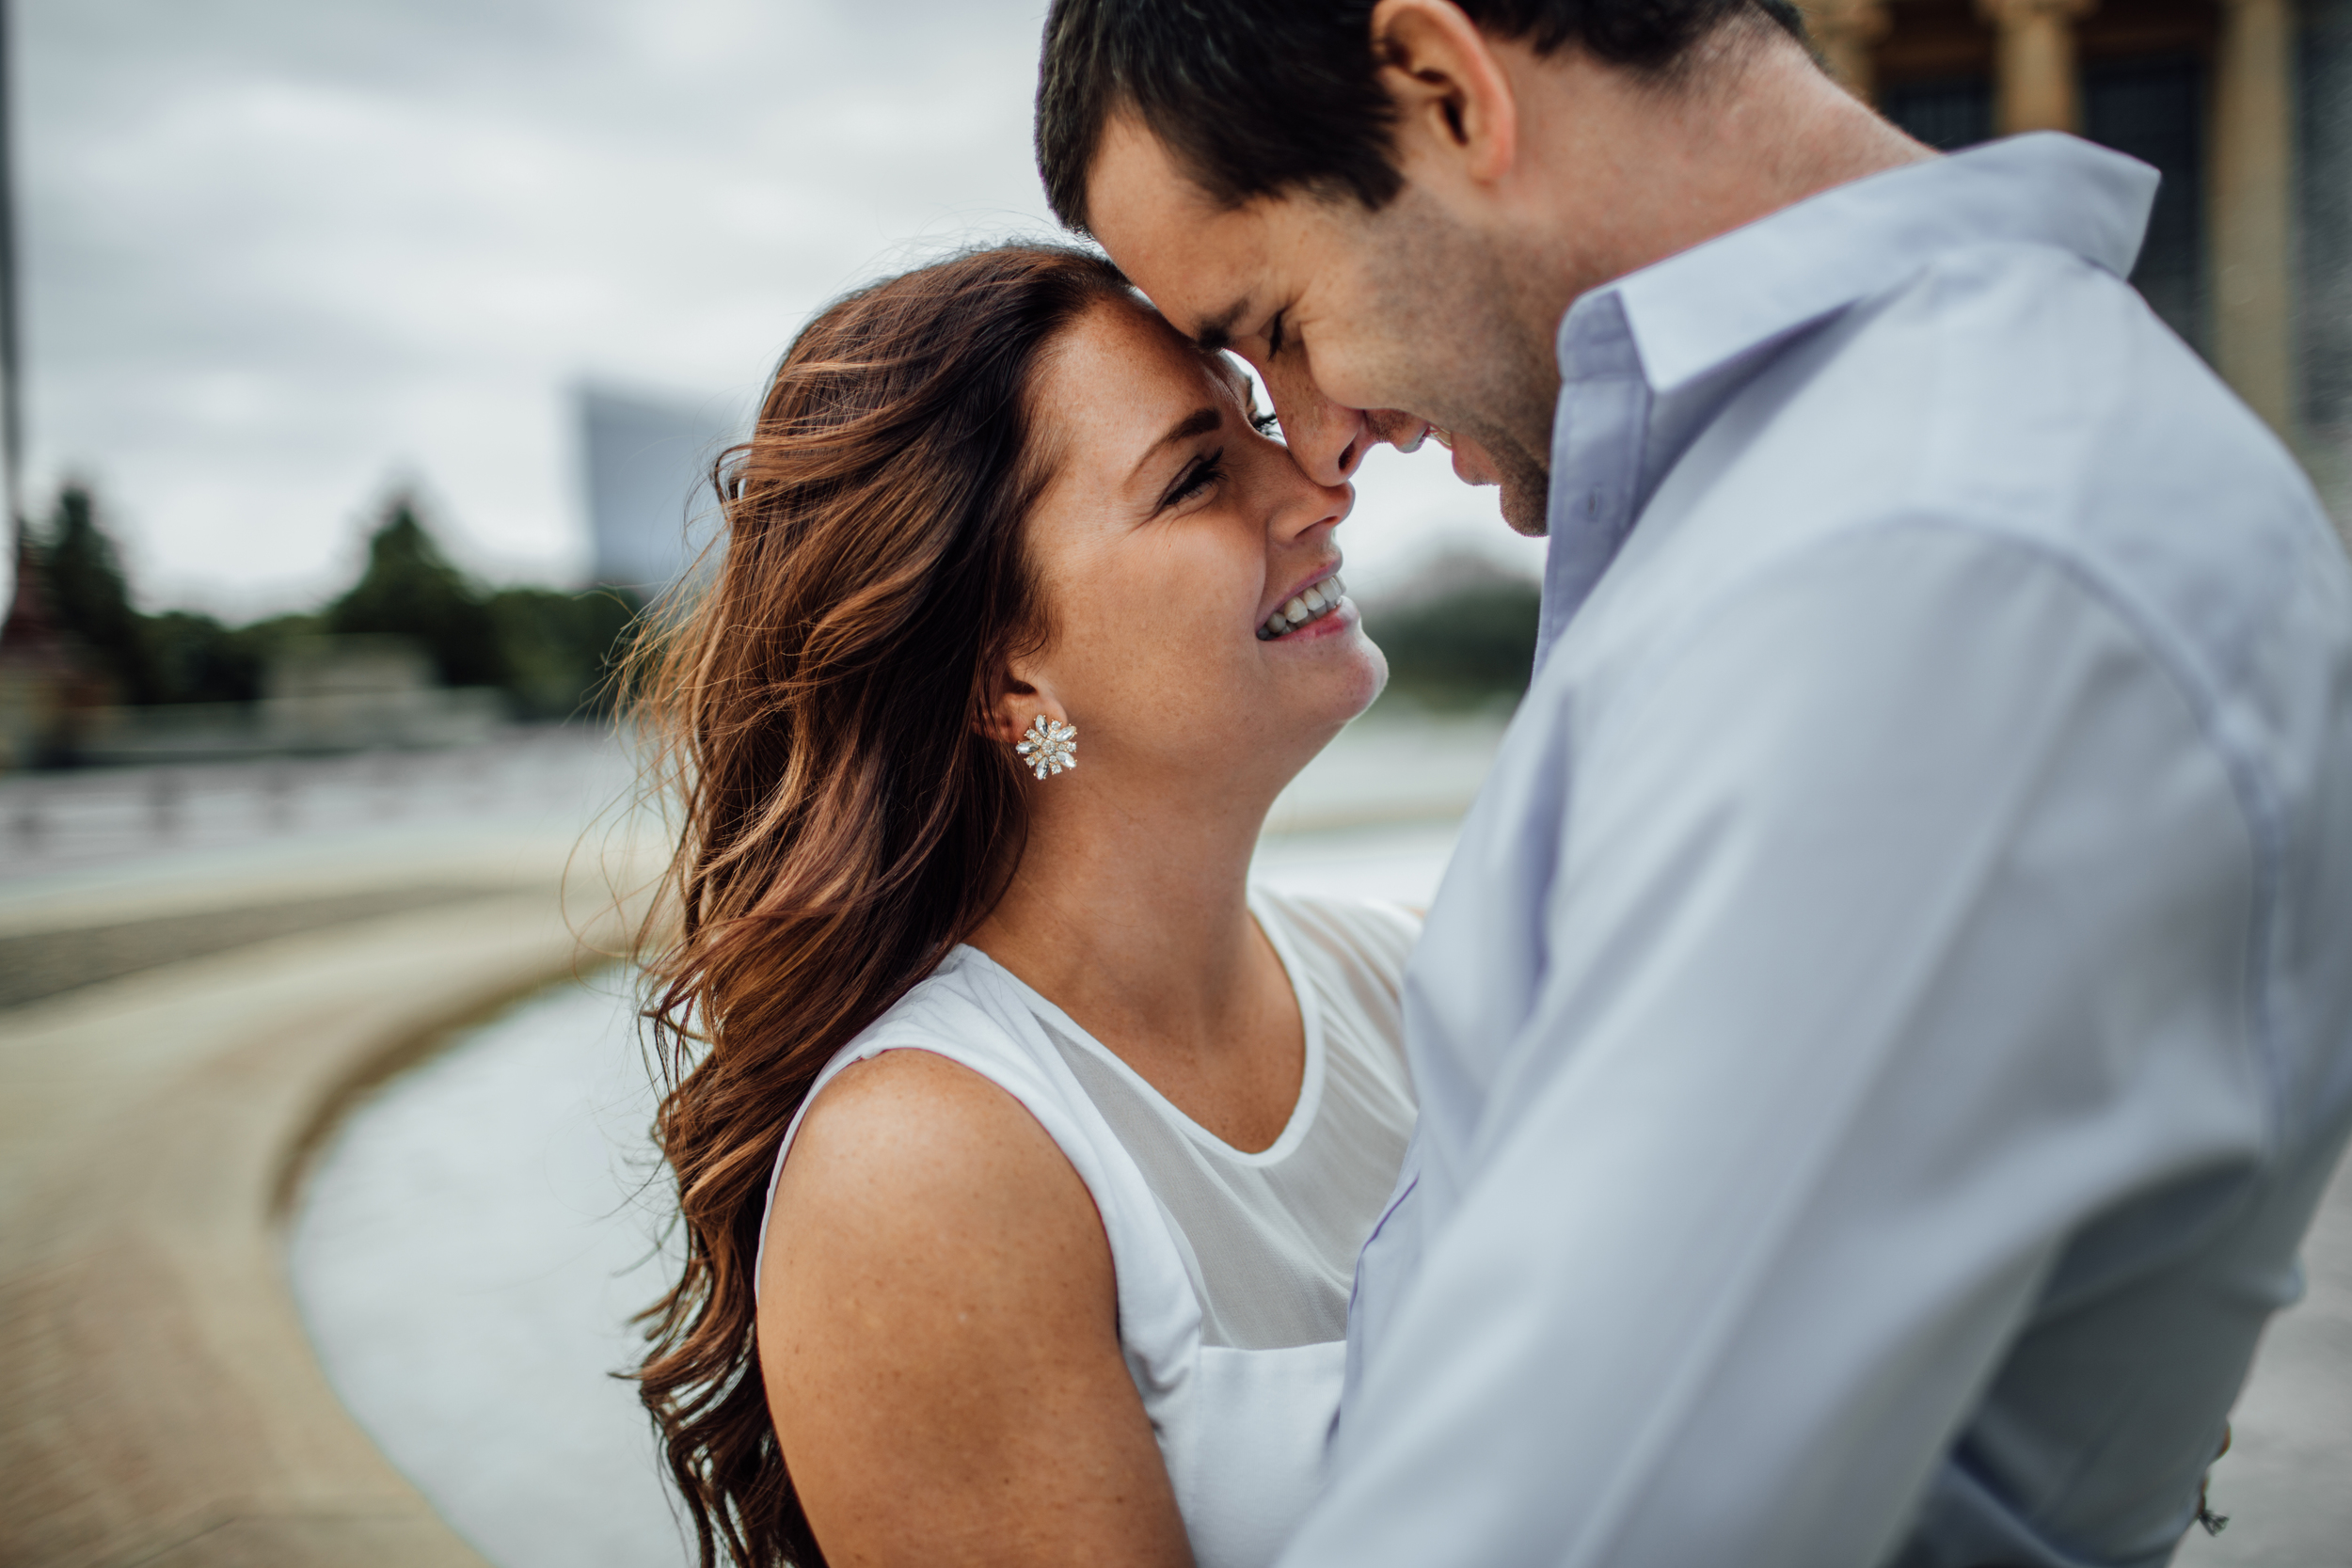 BRITTANYandKEVIN-Engagement2015 (91 of 115).jpg